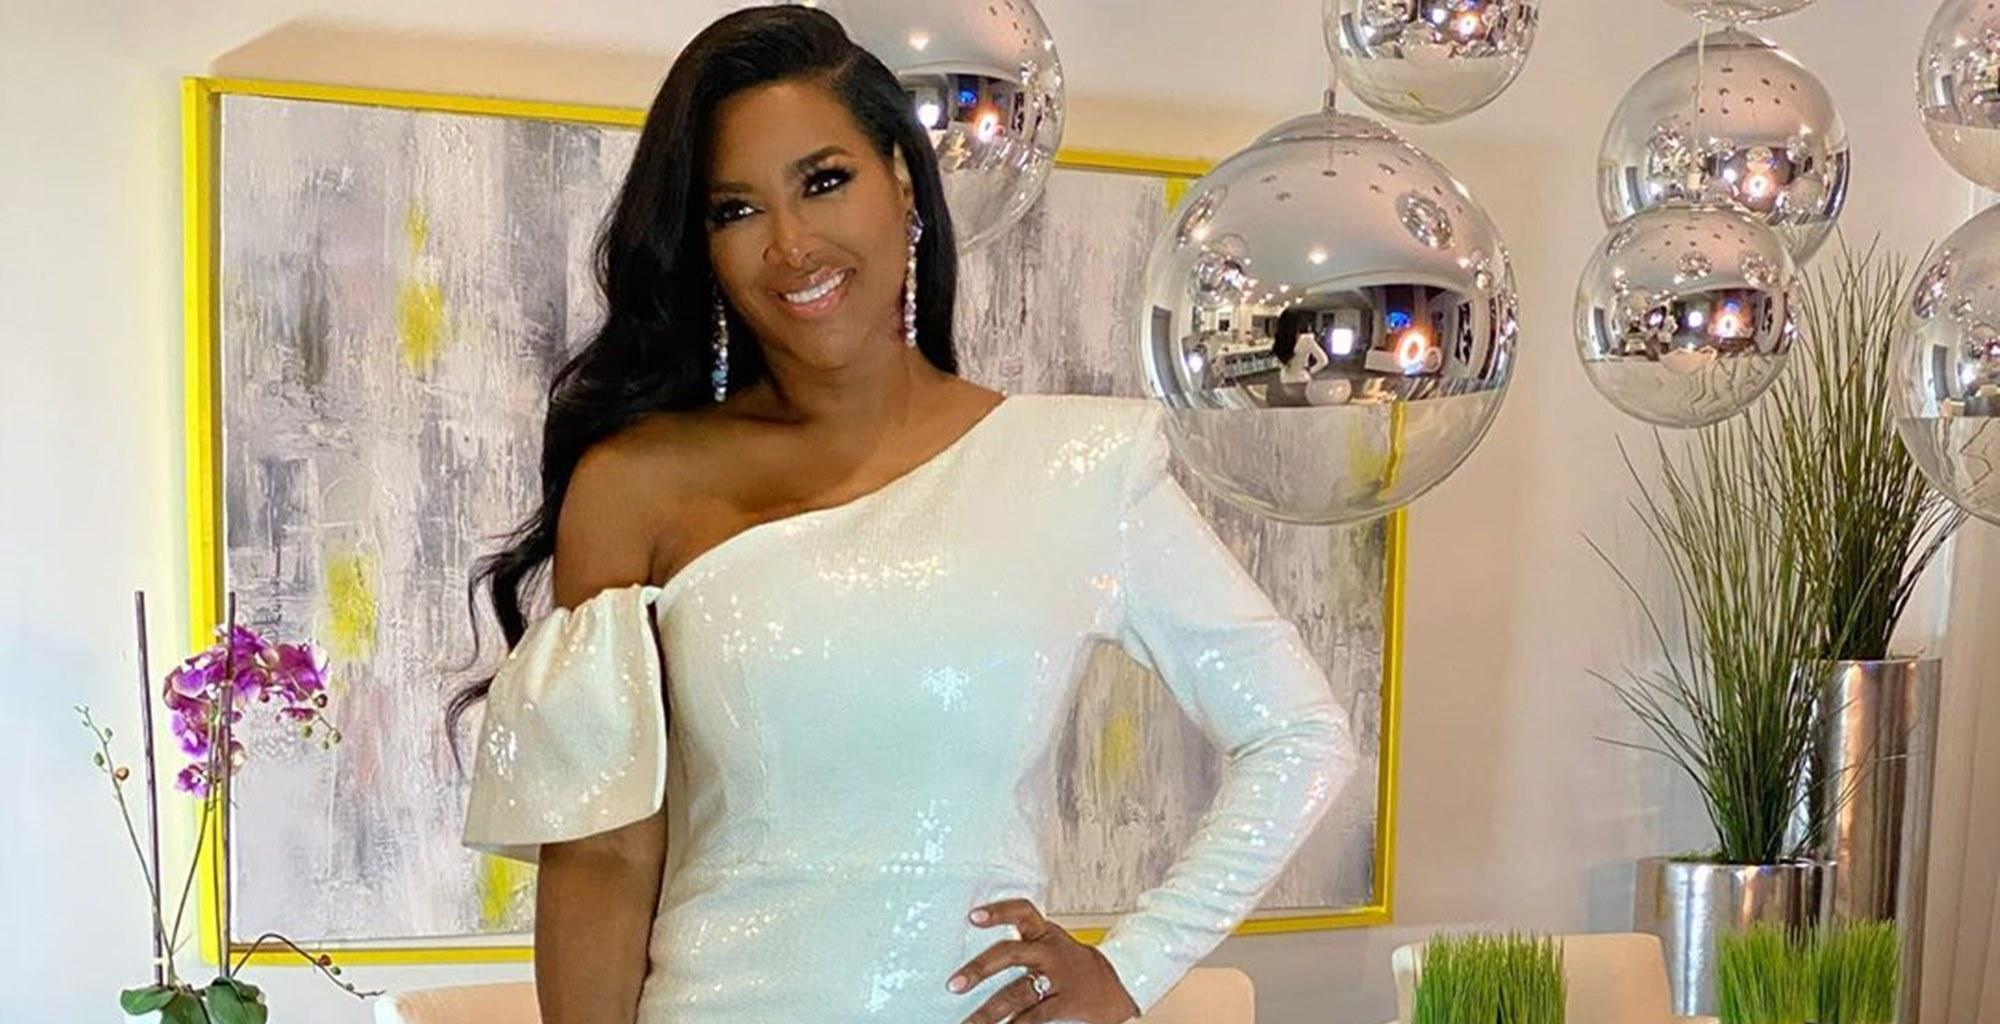 Kenya Moore Makes Huge Announcement About Daughter Brooklyn Daly's Future With Breathtaking Photo